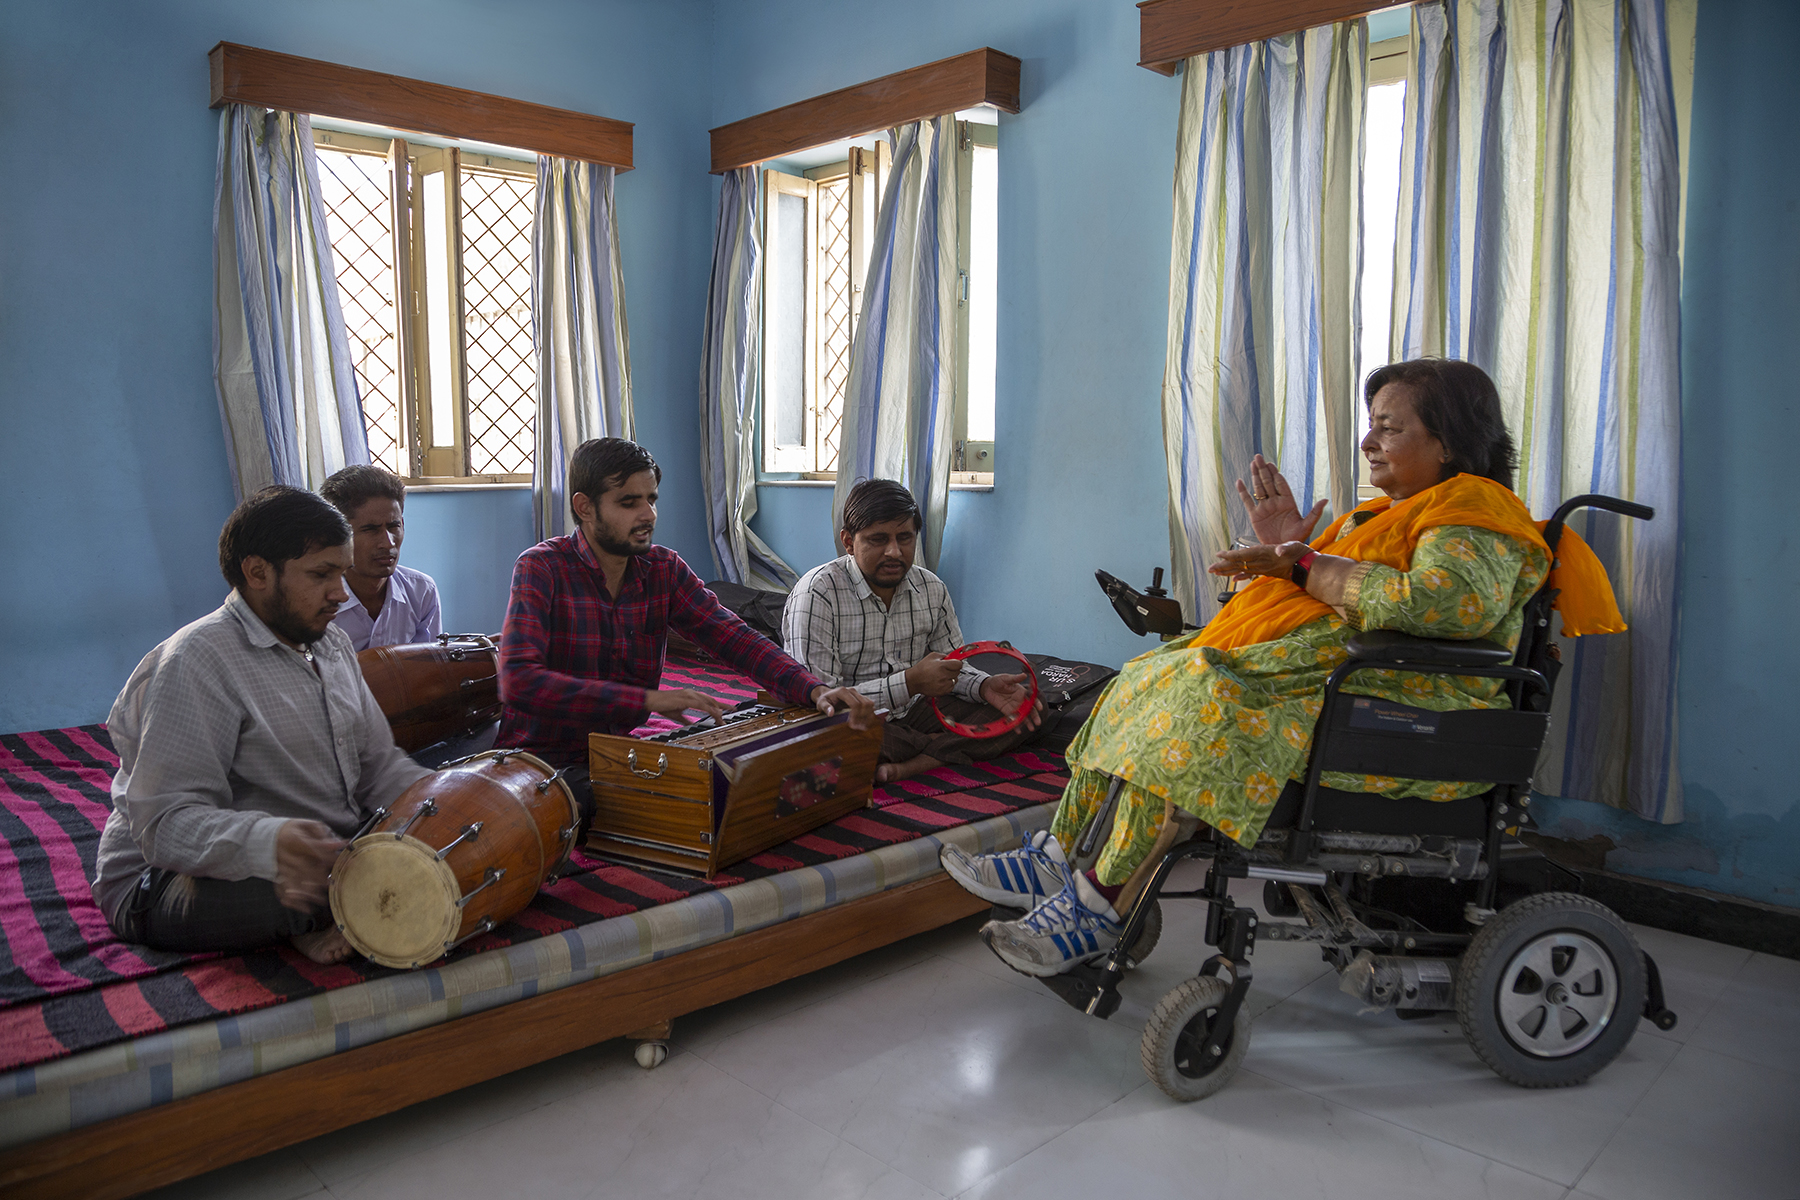 Kusumlata sits in her wheelchair in a room with blue walls and three windows with striped curtains. In front of her is a low wooden divan draped with a red and white striped rug on which four blind musicians sit crosslegged. Two play the dholak (drum), the third plays the harmonium and the fourth, the tambourine. The clapping action of Kusumlata's palms show that she is measuring the beats, keeping taal to the music.